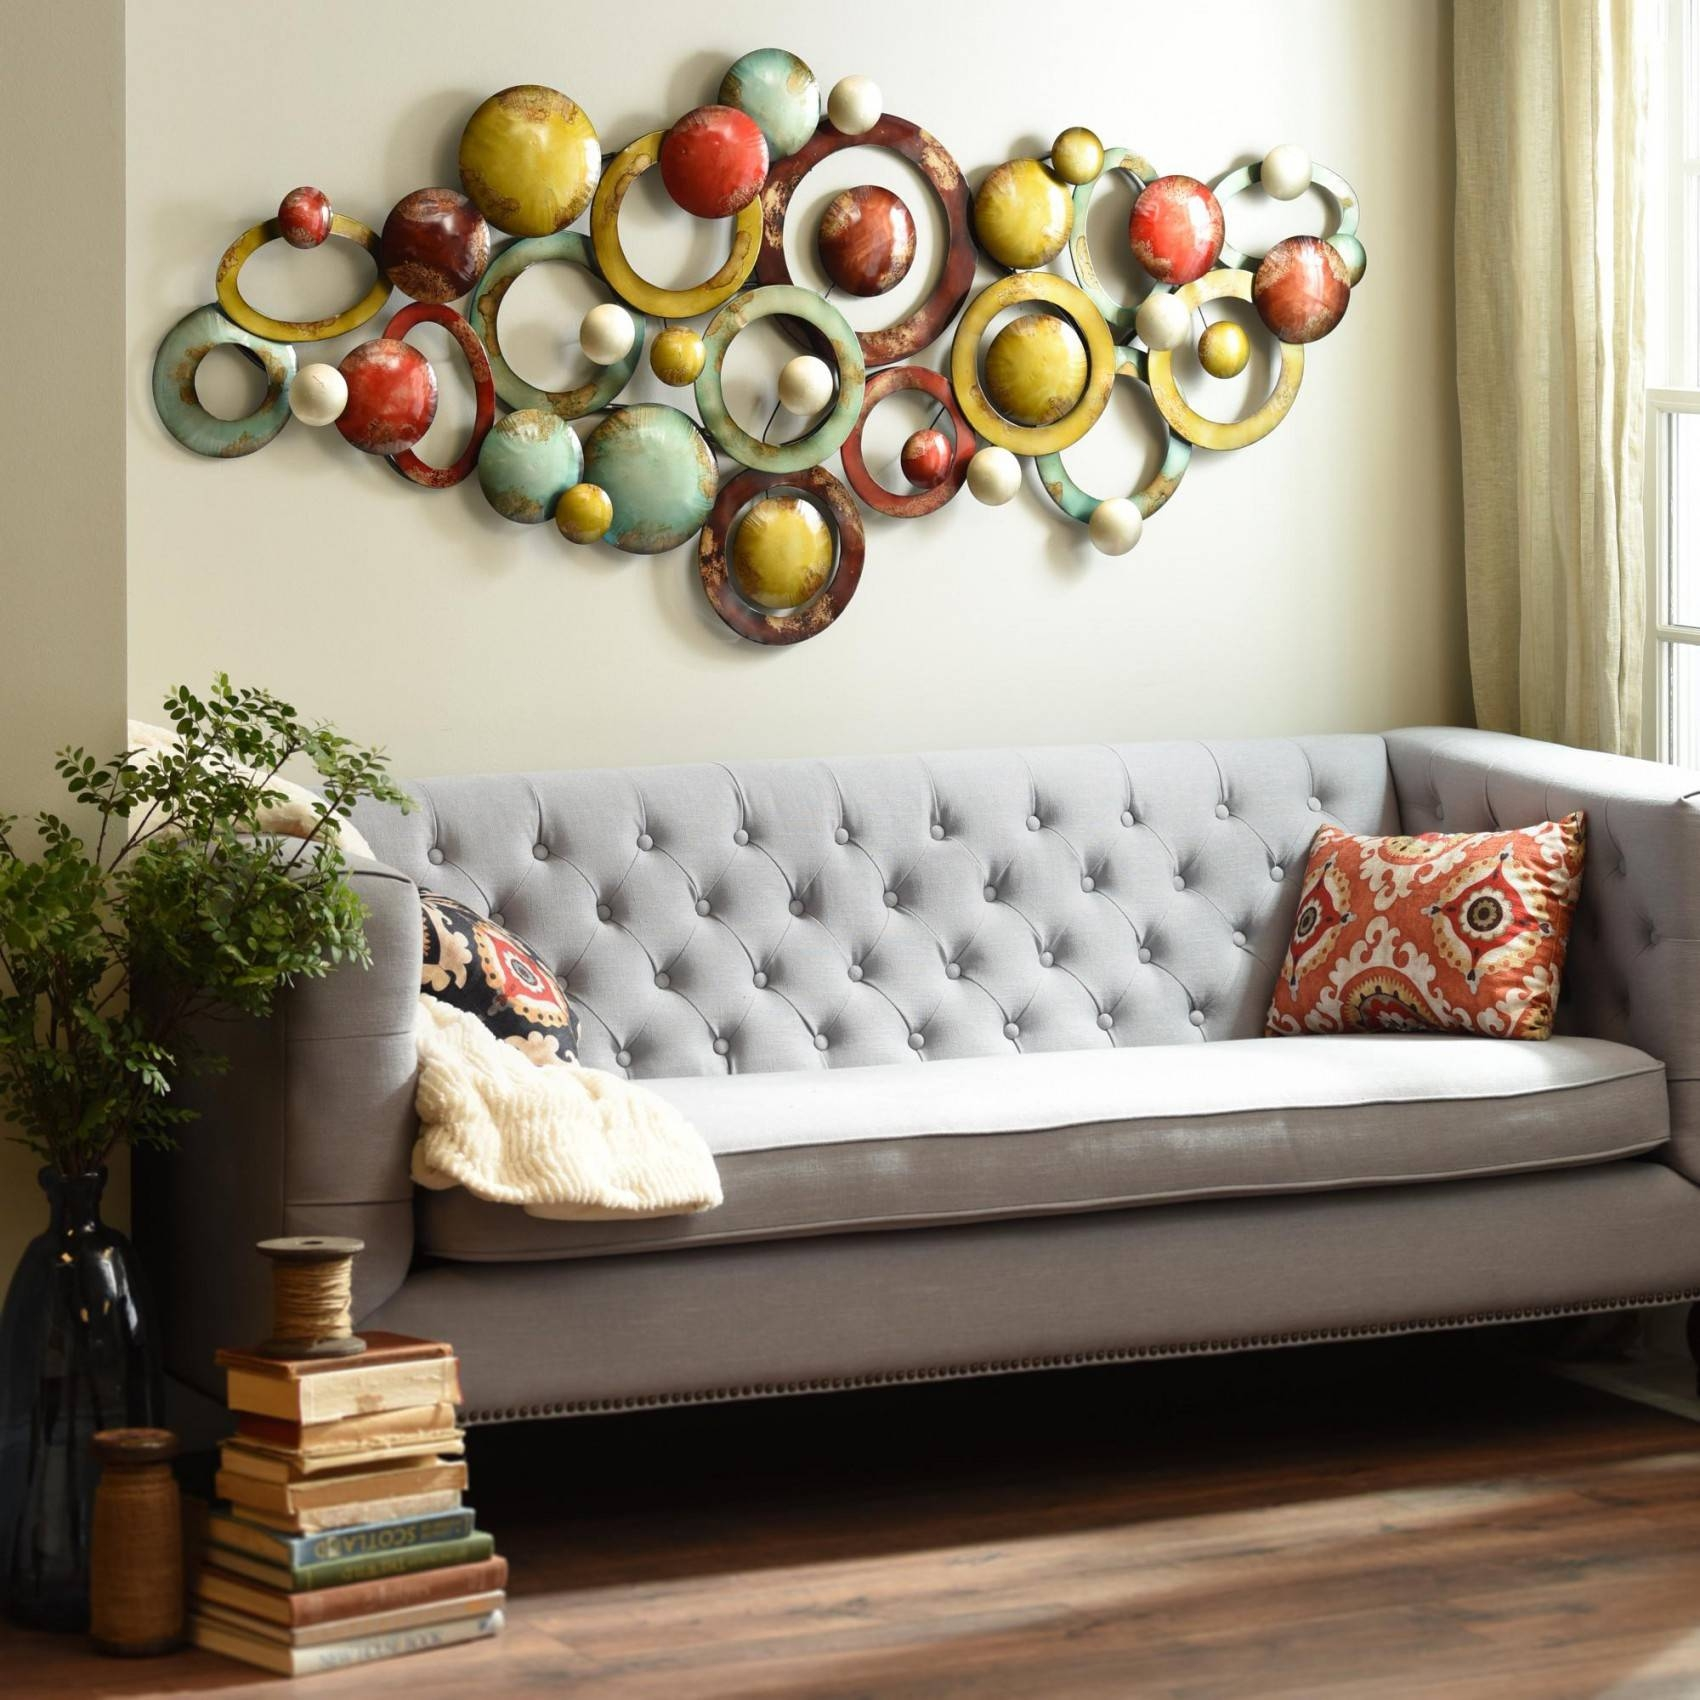 Living Room Metal Wall Art – Best Home Design Ideas Pertaining To Pertaining To Most Current Metal Wall Art For Living Room (View 7 of 20)